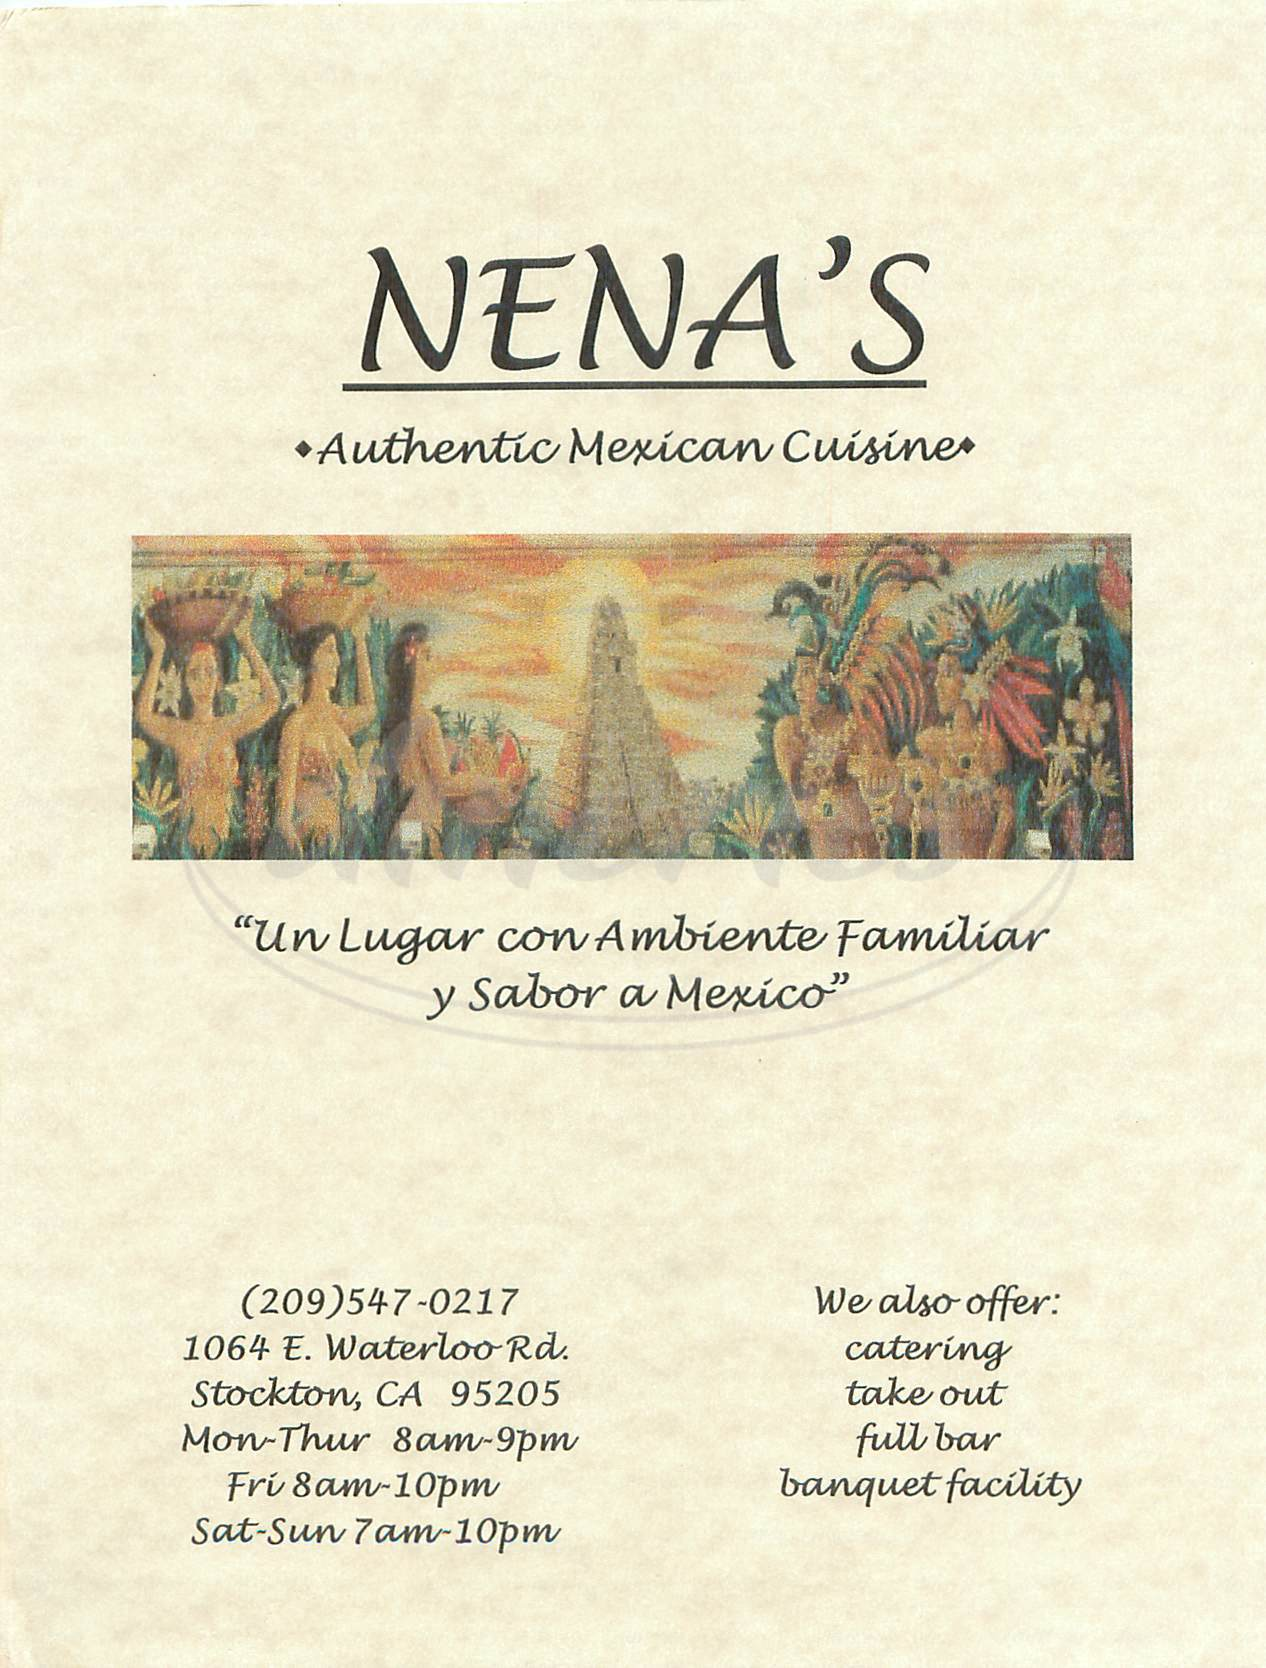 menu for Nenas Restaurant